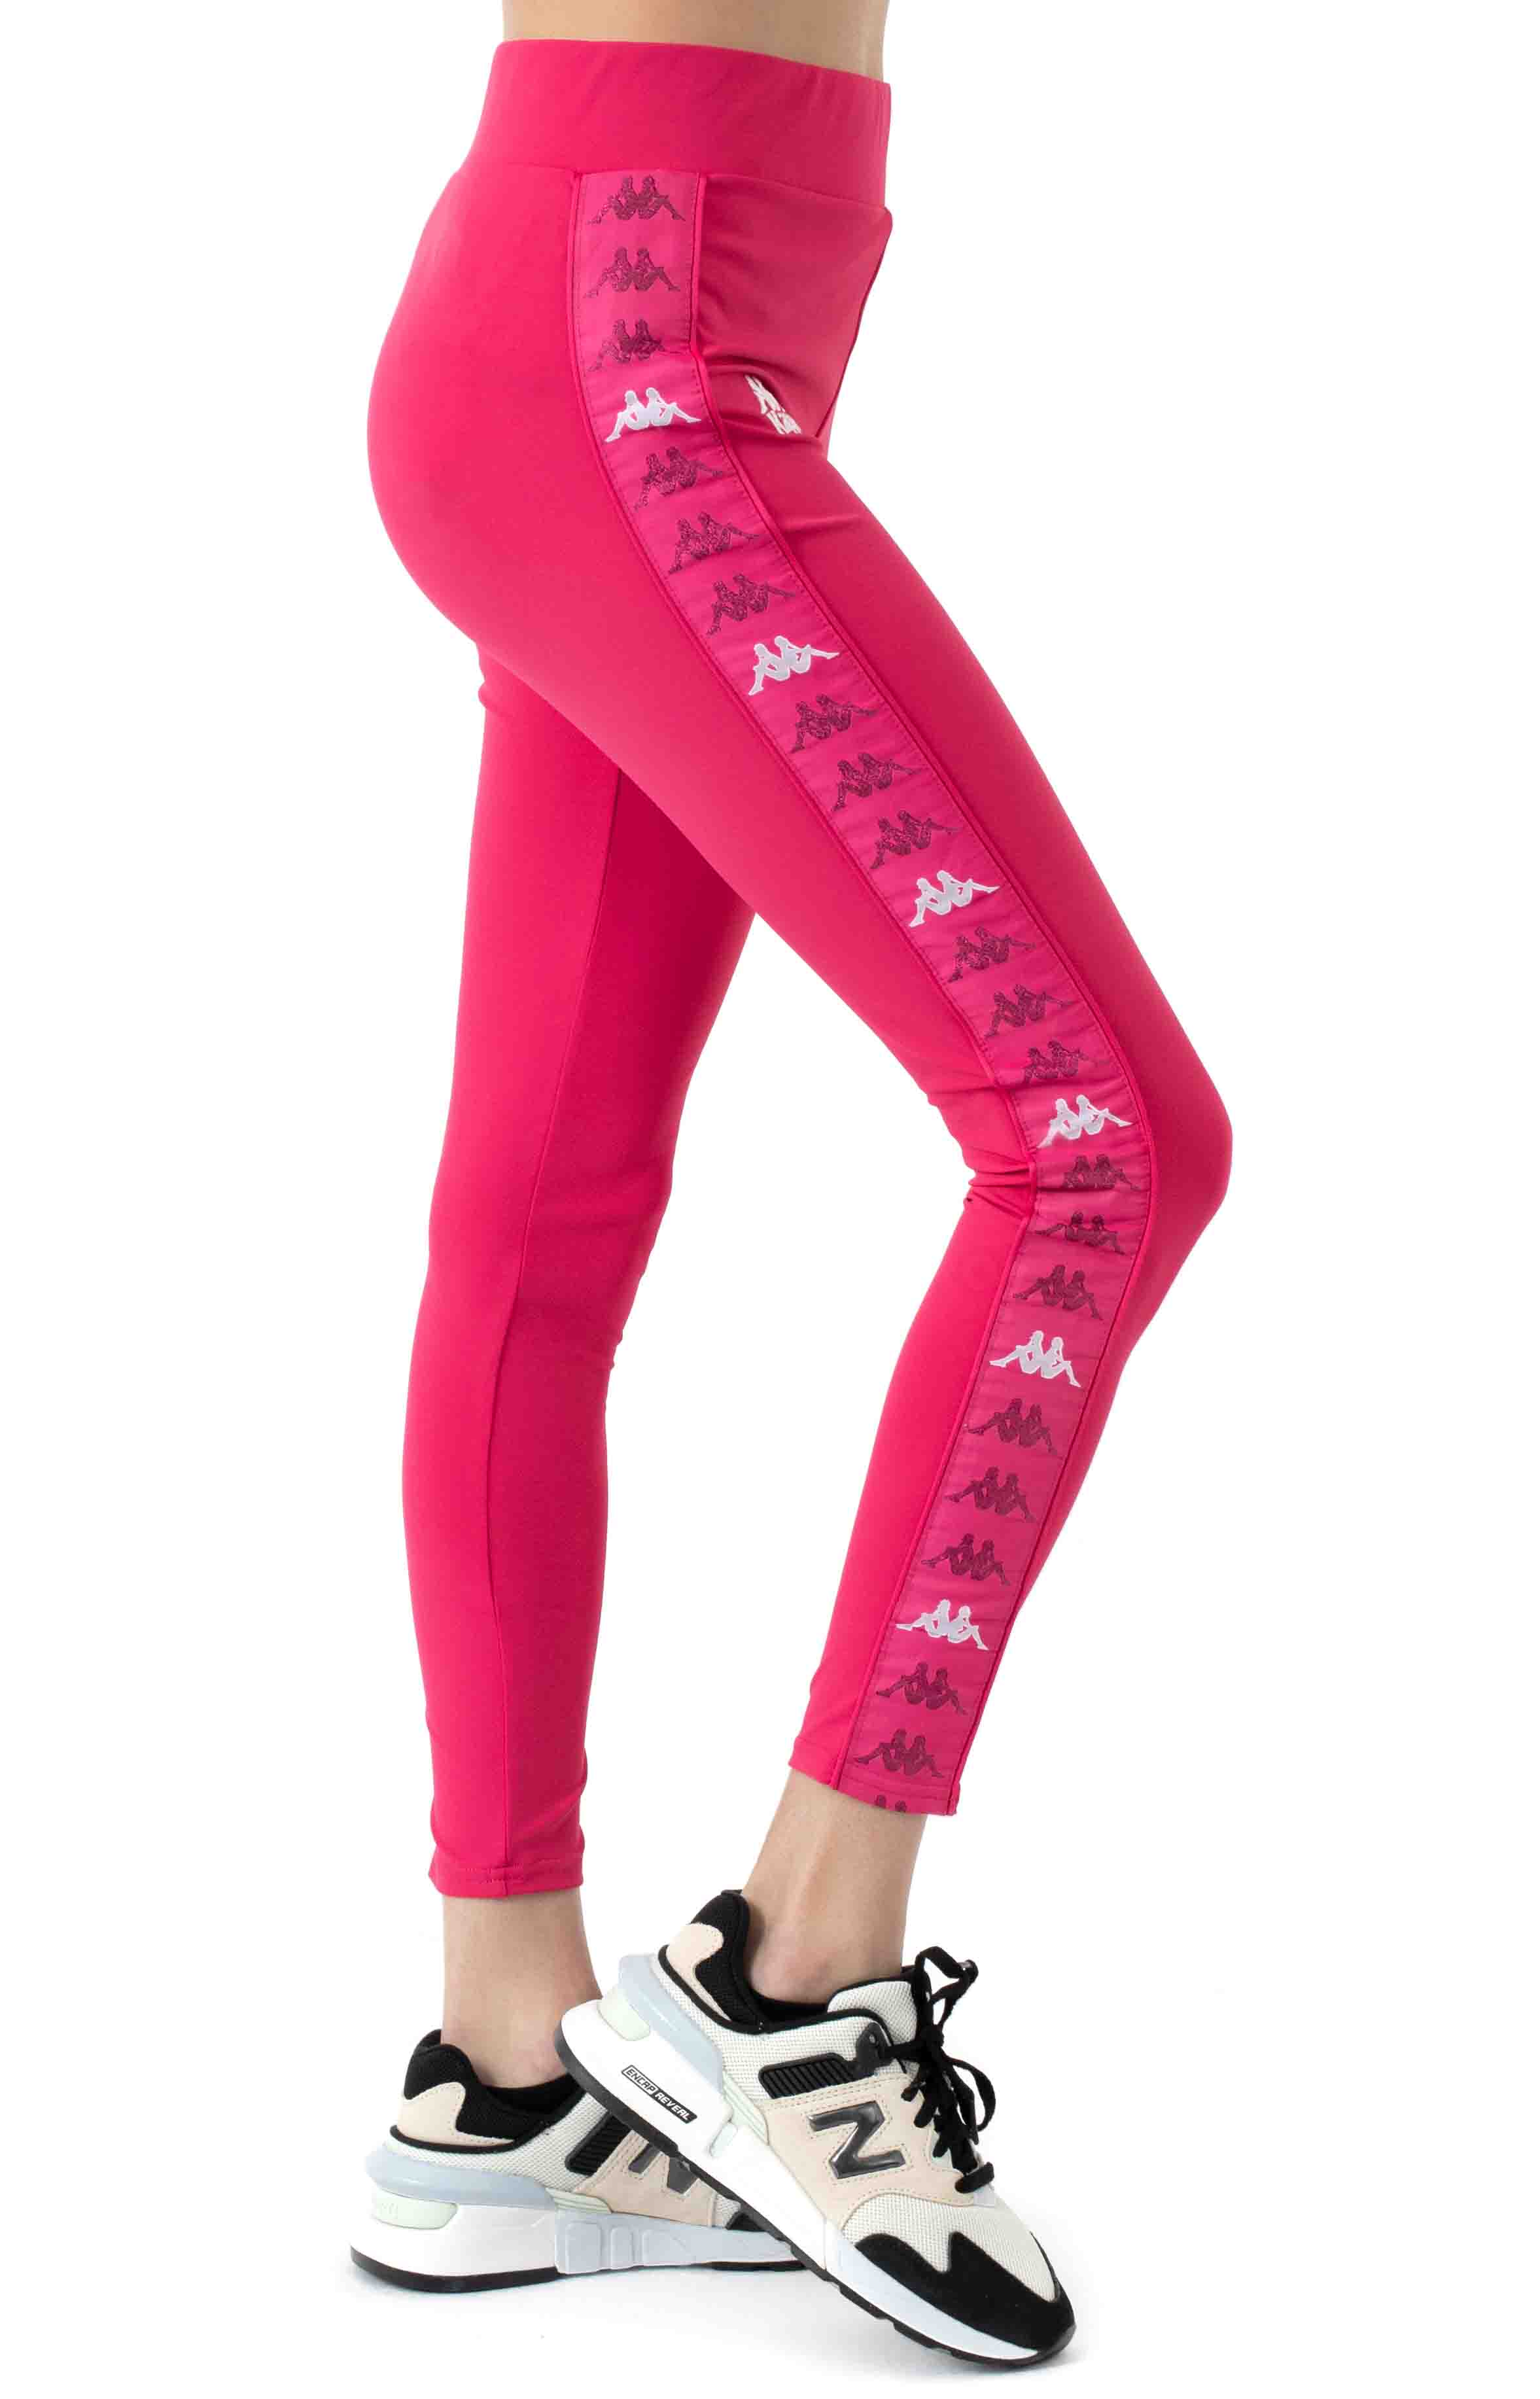 222 Banda Bartes Leggings - Pink/White  2